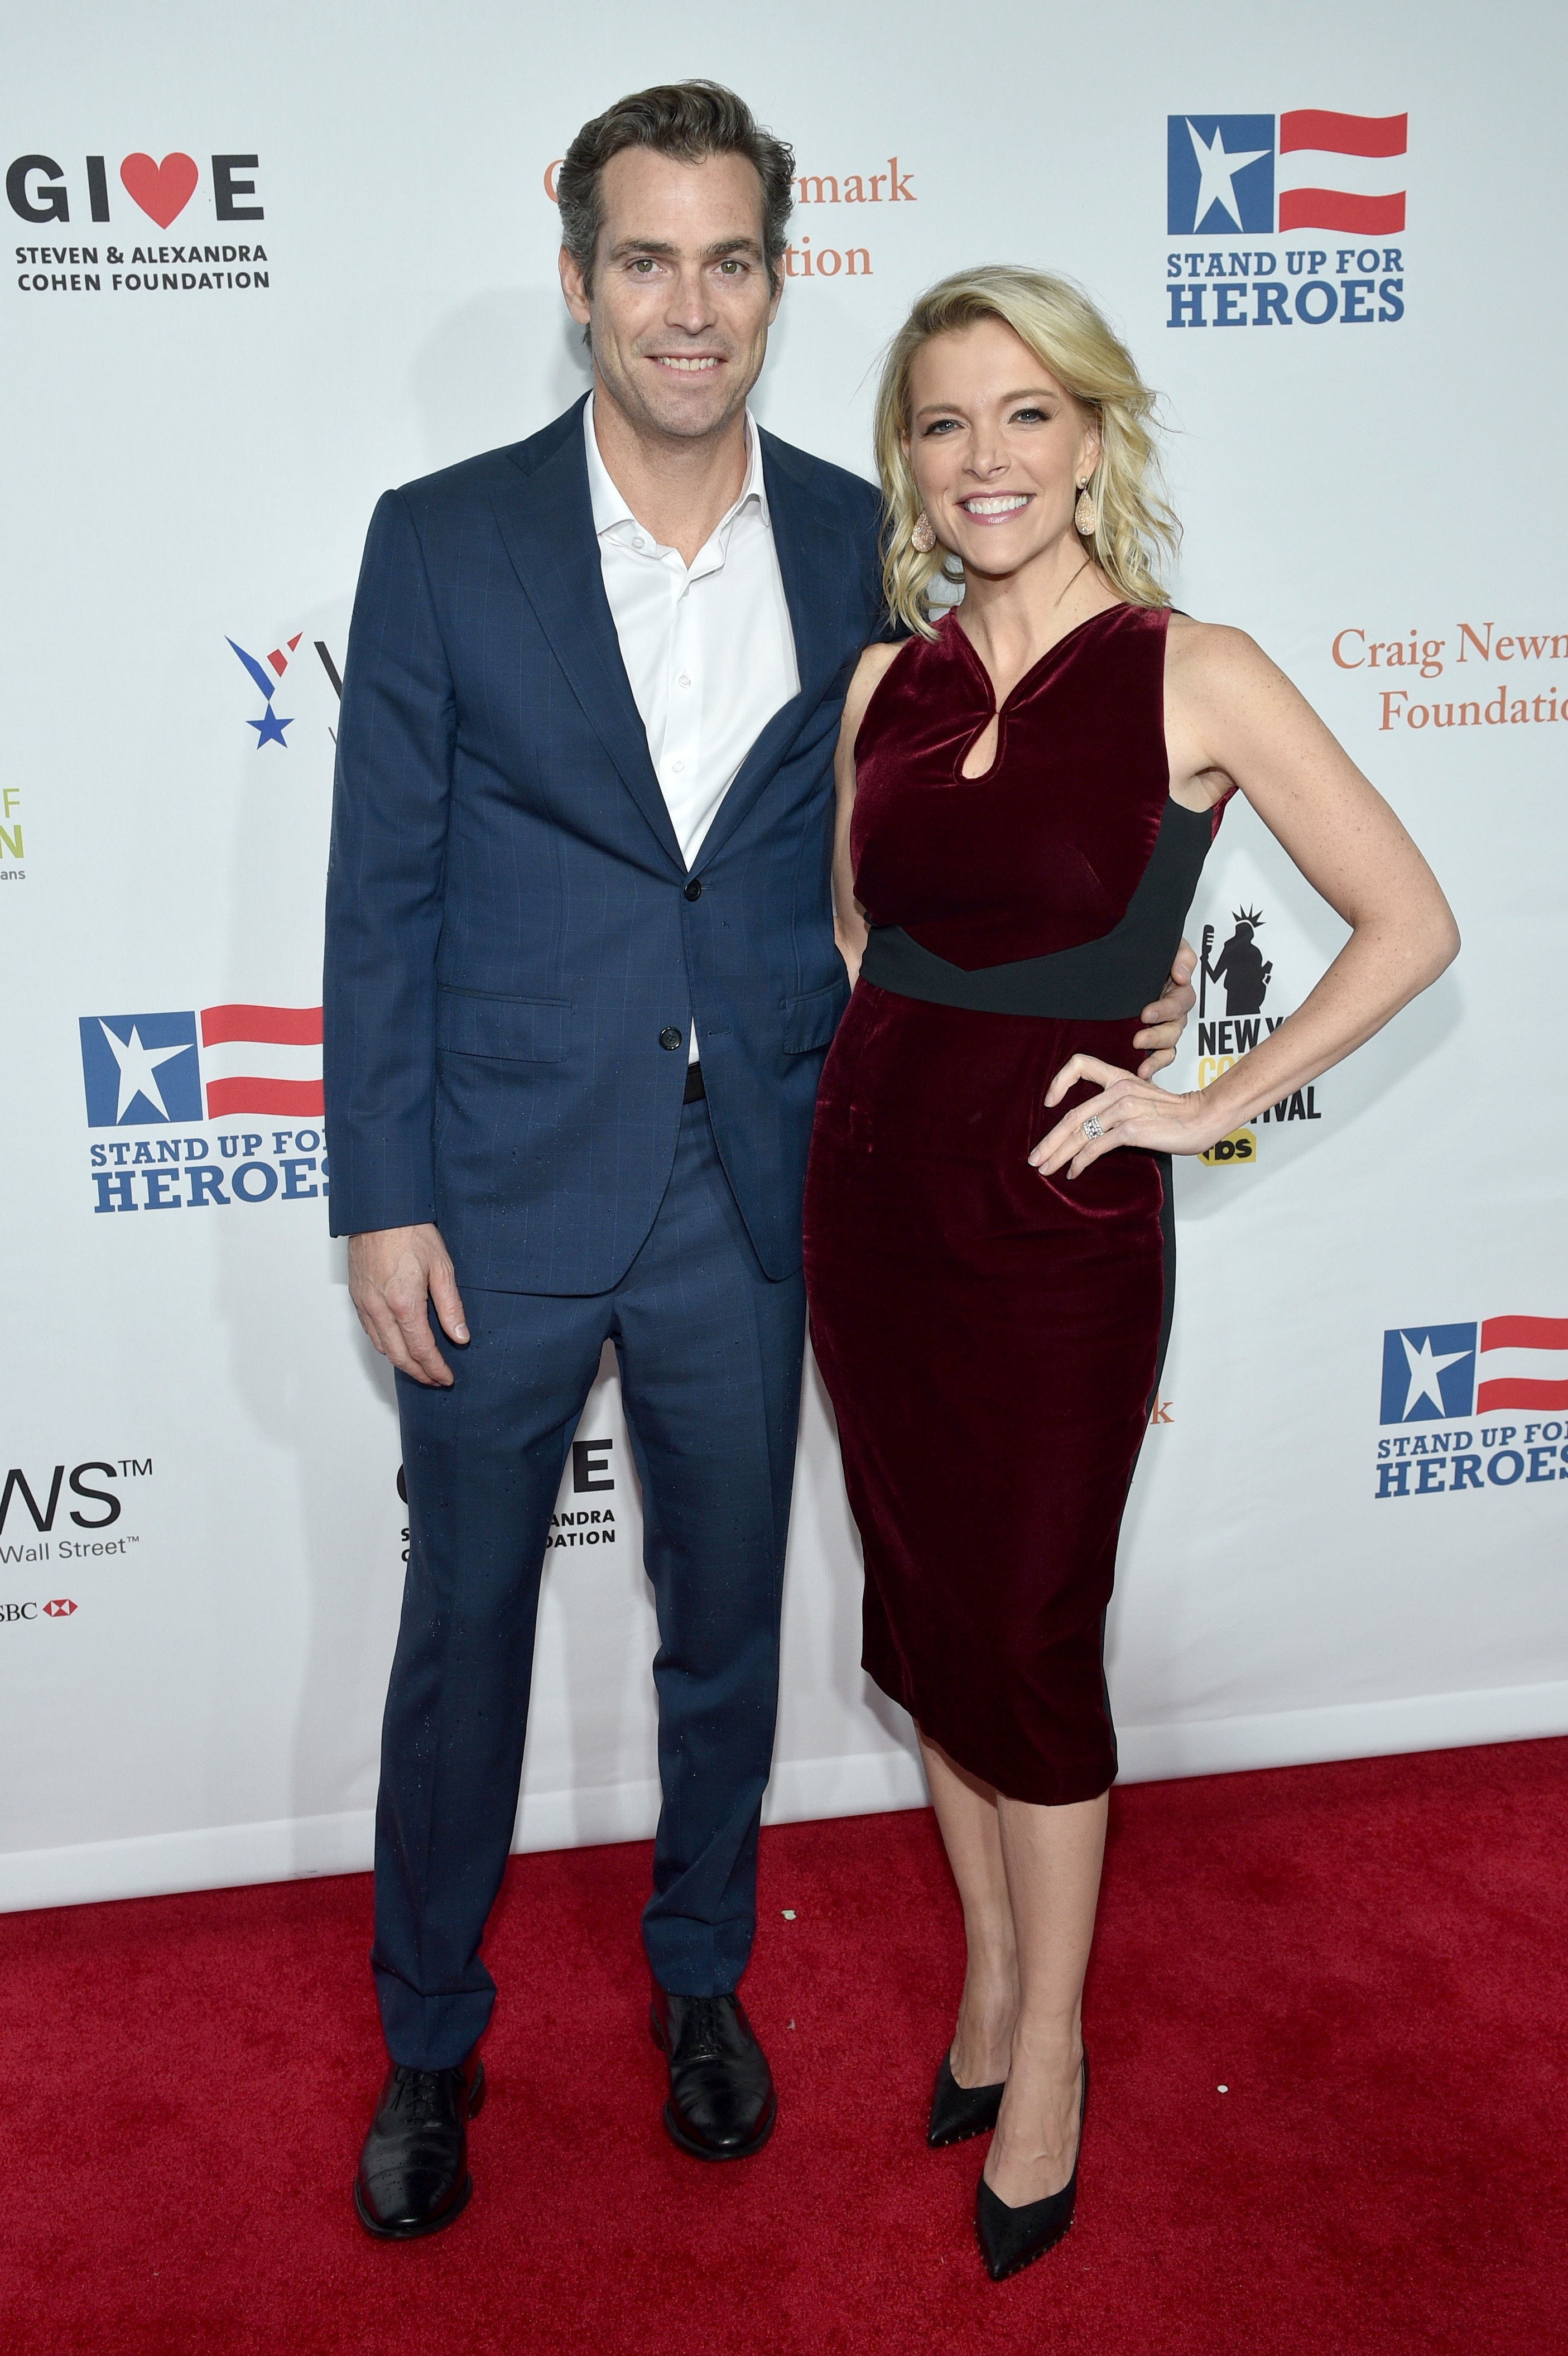 Douglas Brunt and Megyn Kelly attend the 11th Annual Stand Up for Heroes Event on November 7, 2017, in New York City. | Source: Getty Images.